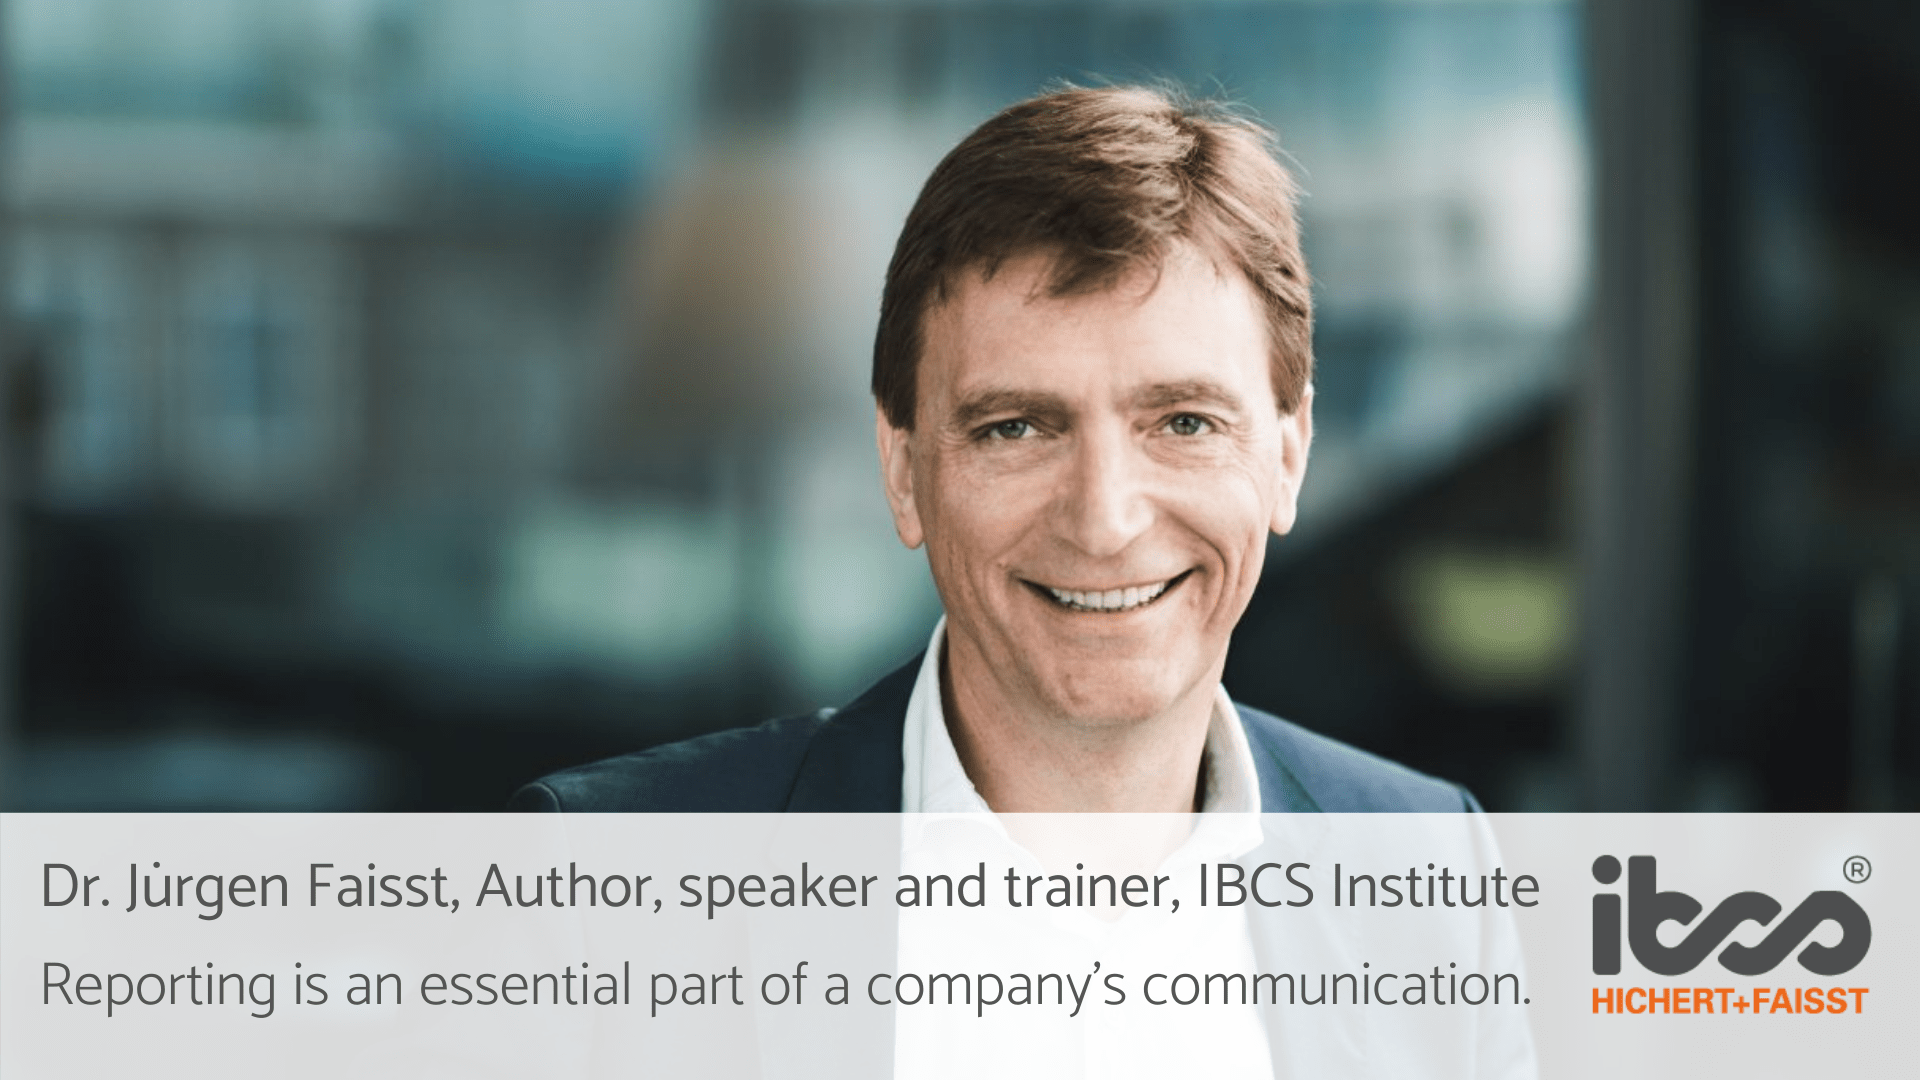 [INTERVIEW] Dr. Jürgen Faisst, Author, speaker and trainer, IBCS Institute   Reporting is an essential part of a company's communication